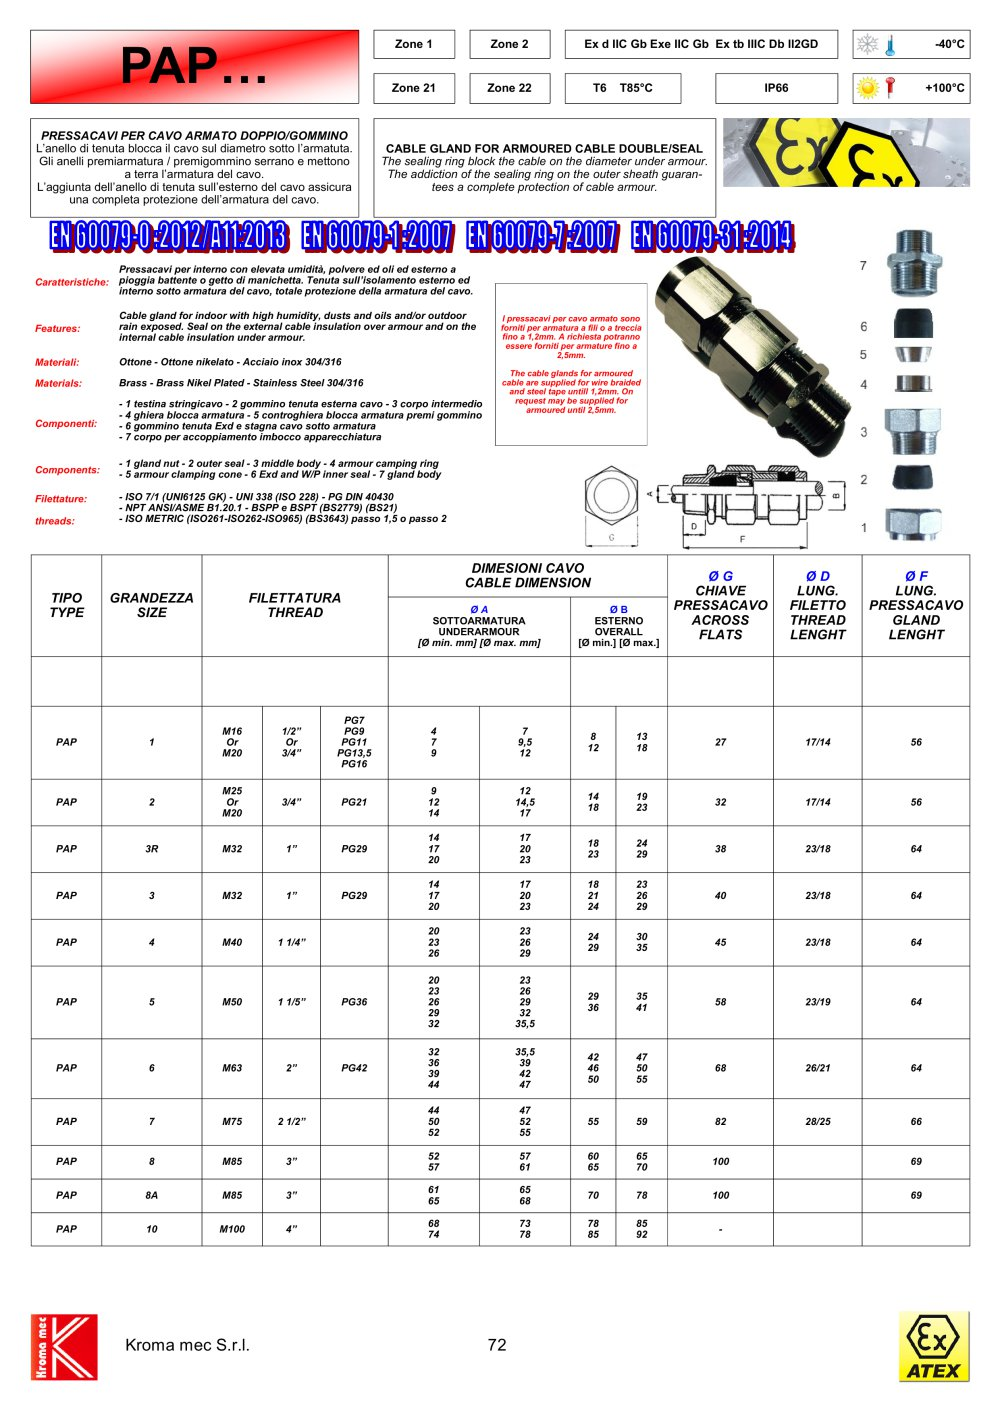 Cable Glands Types Cable Gland For Armoured Cable